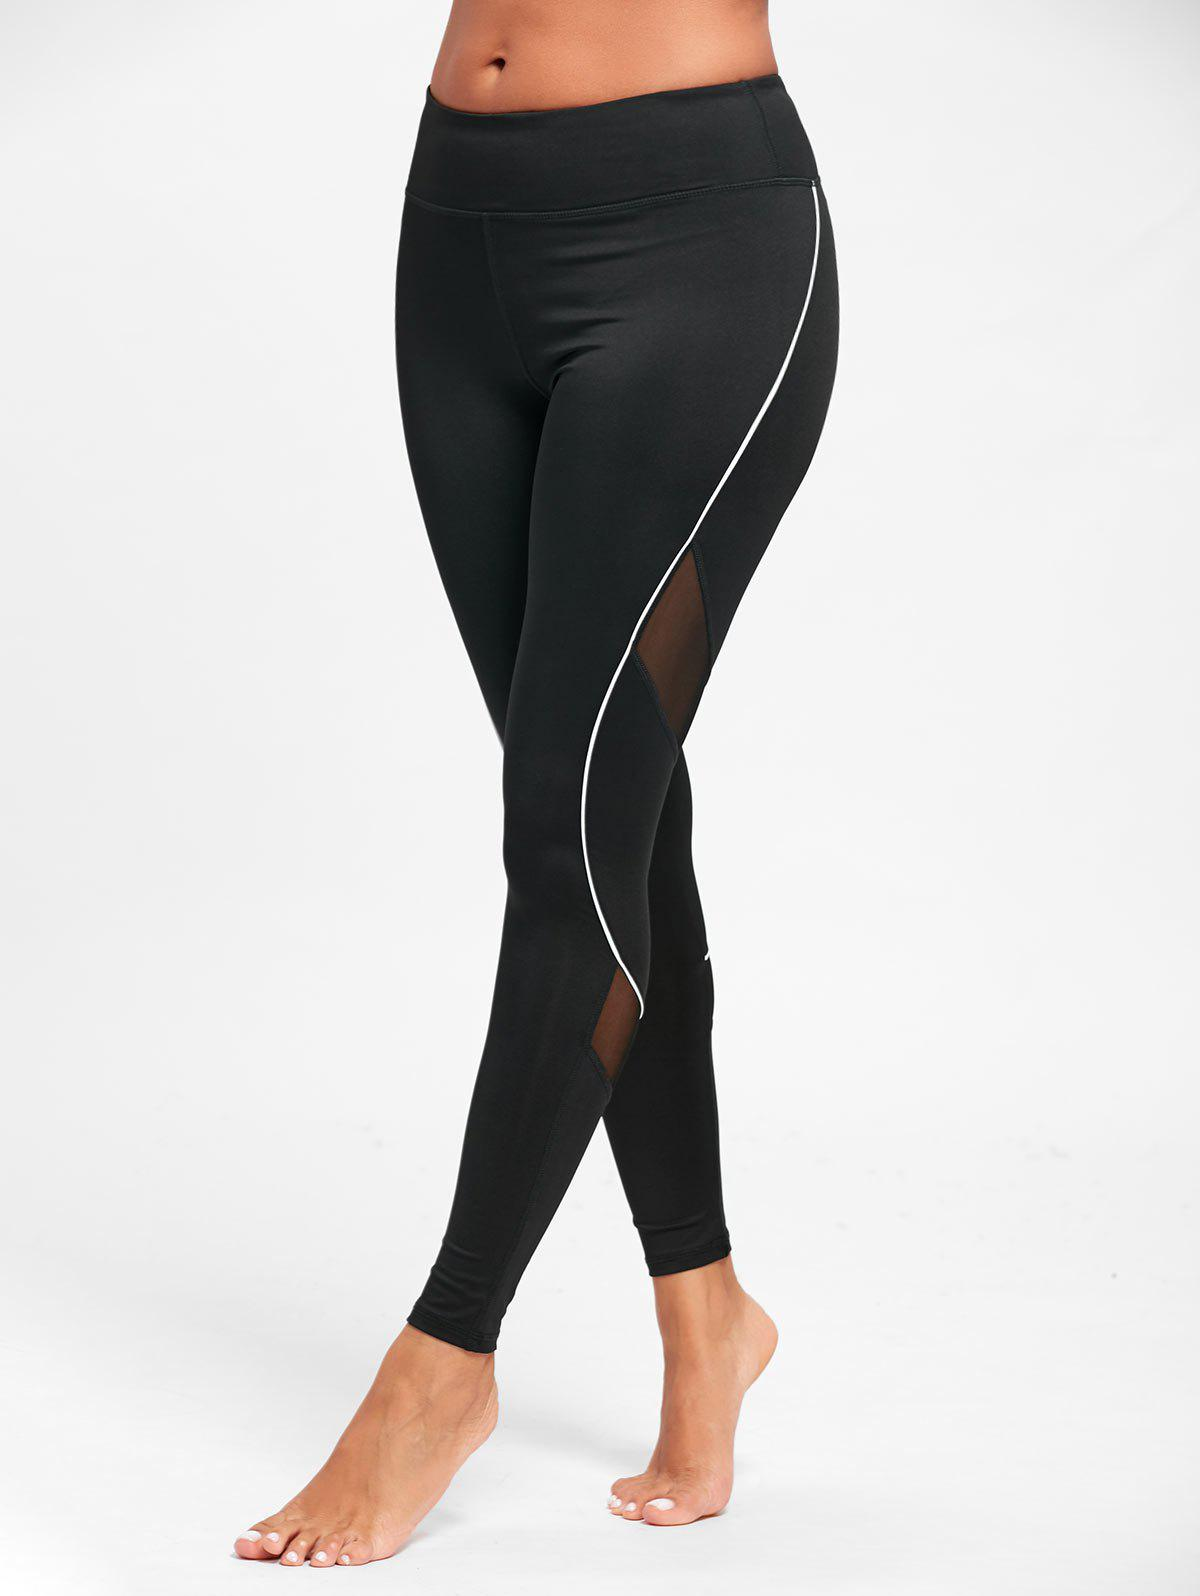 Midi Waist Contrast Tall Leggings for Sports - BLACK S